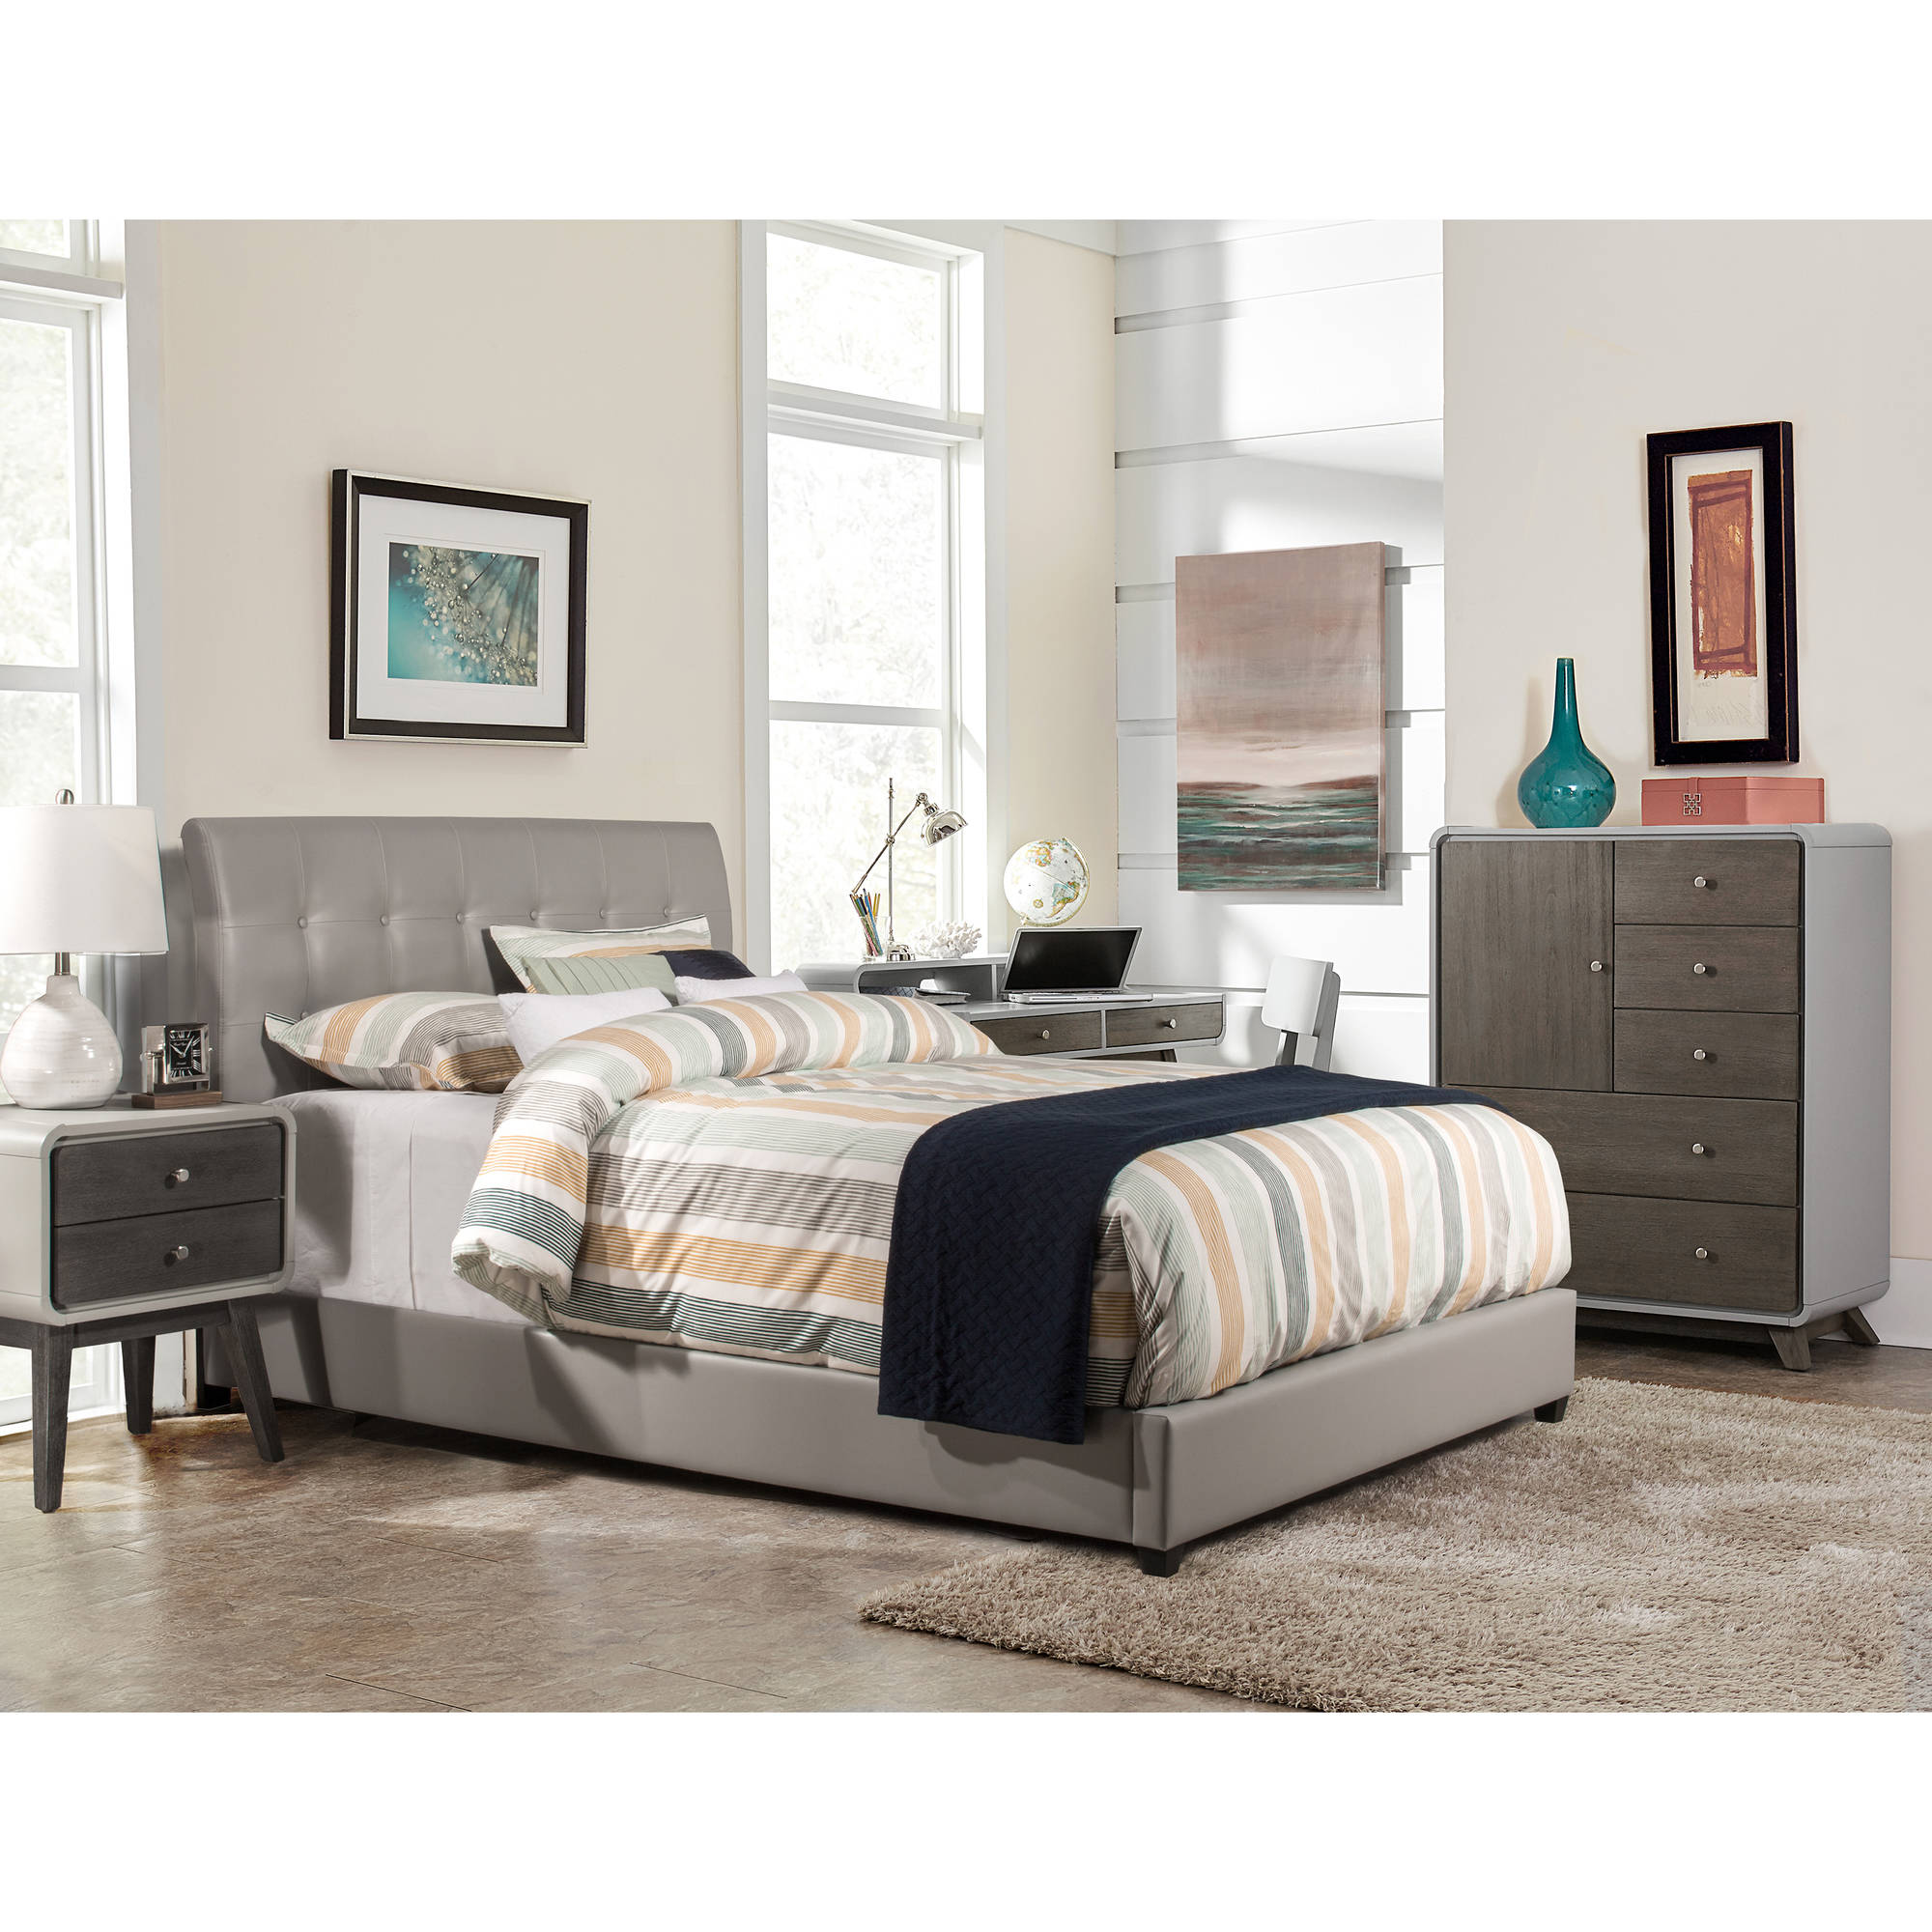 hillsdale furniture lusso king bed with bedframe grey faux leather